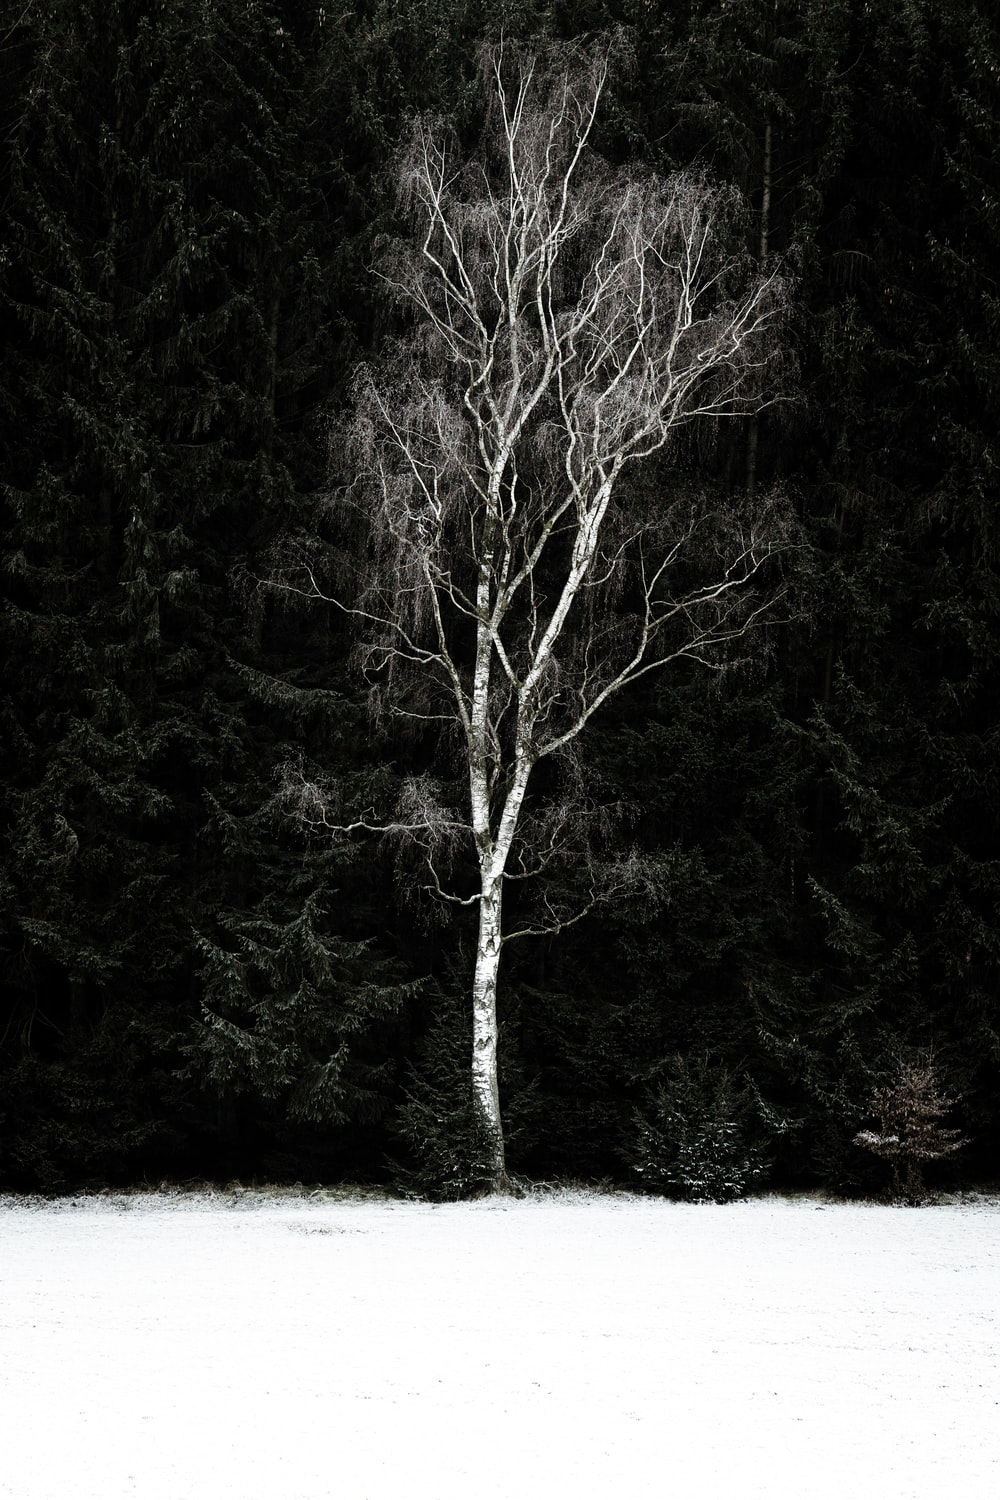 grayscale photography of bare tree near snowy field